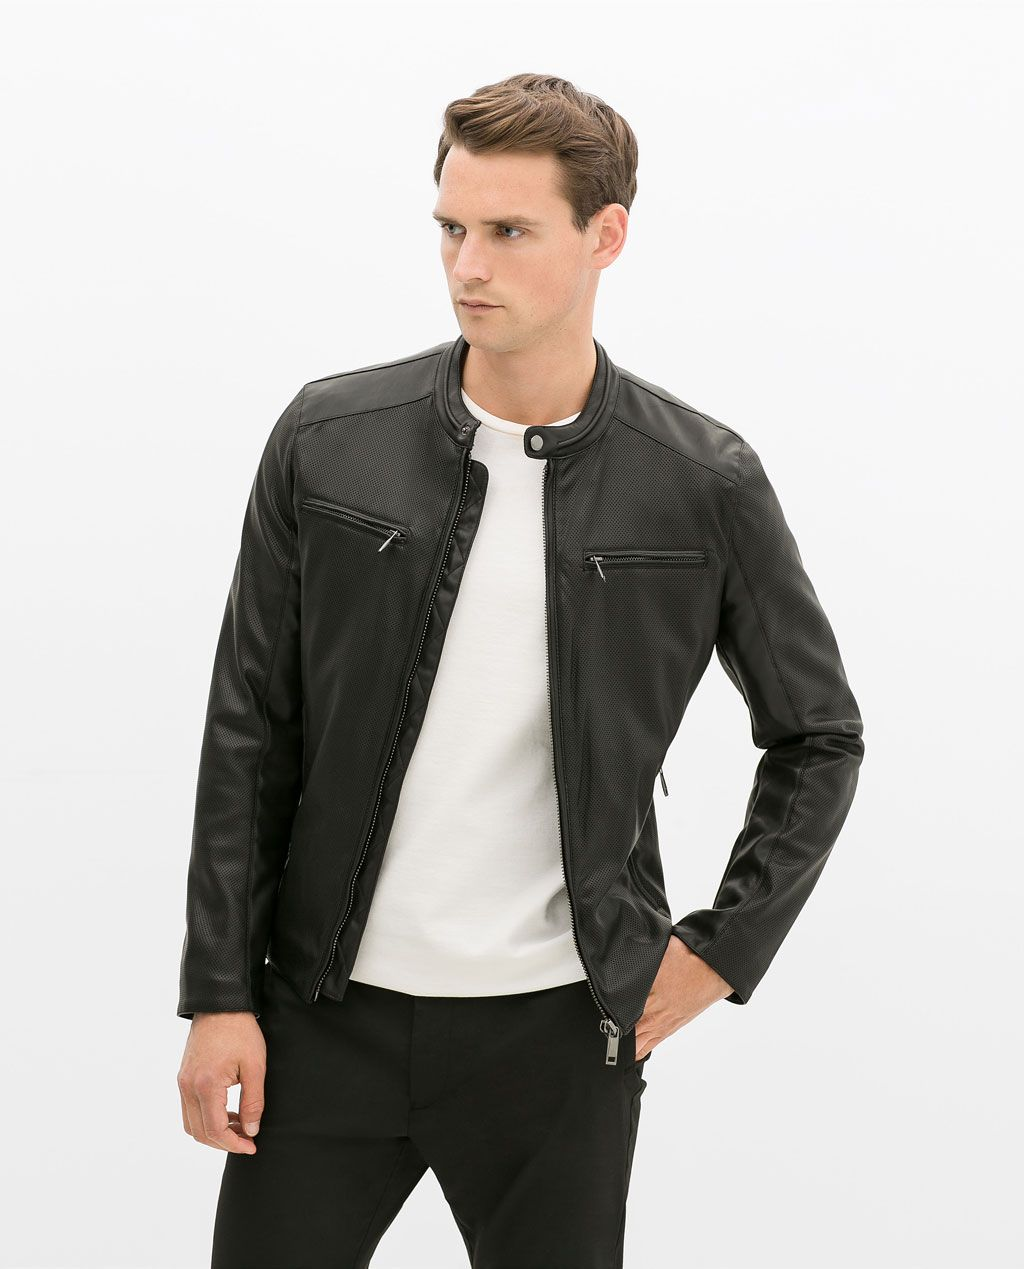 Leather jacket yellow zara - Image 1 Of Perforated Faux Leather Jacket From Zara